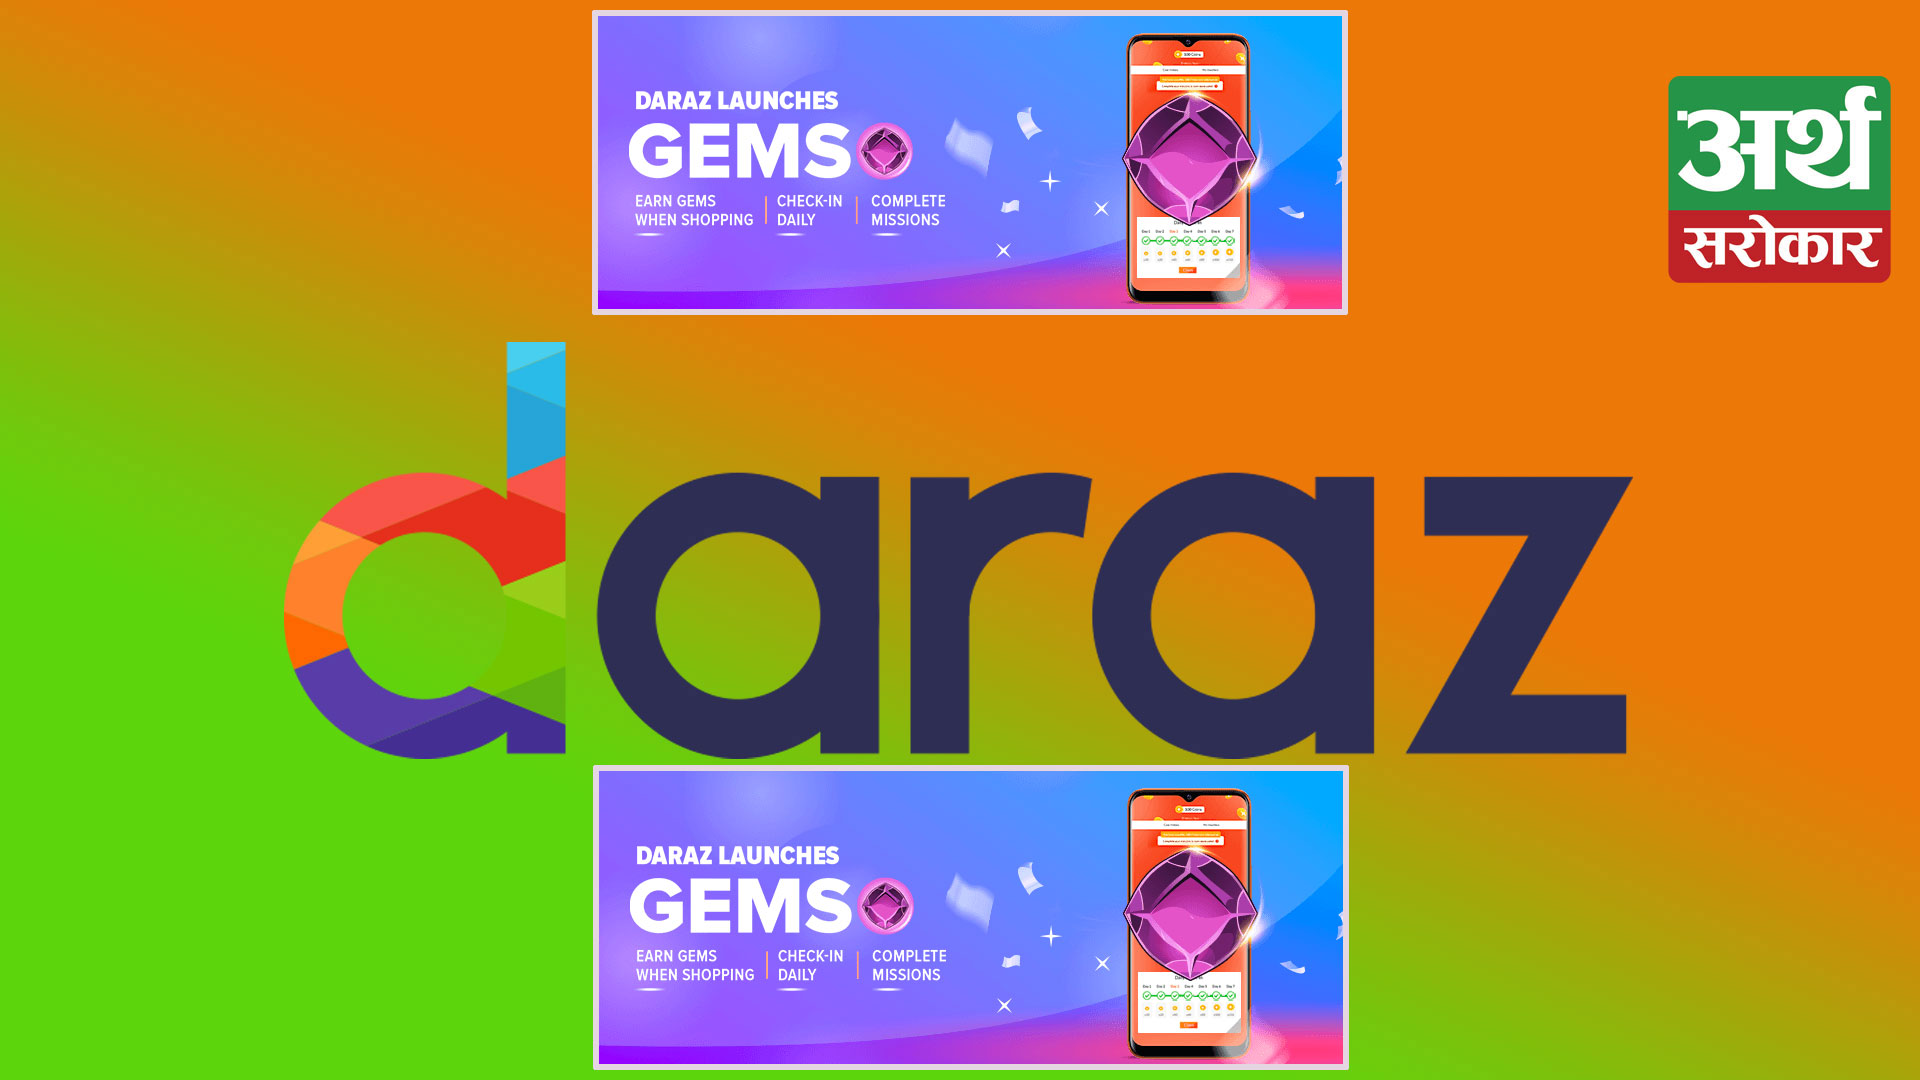 Daraz Launches Gems, Chance for Customers to Earn Free Vouchers Daily